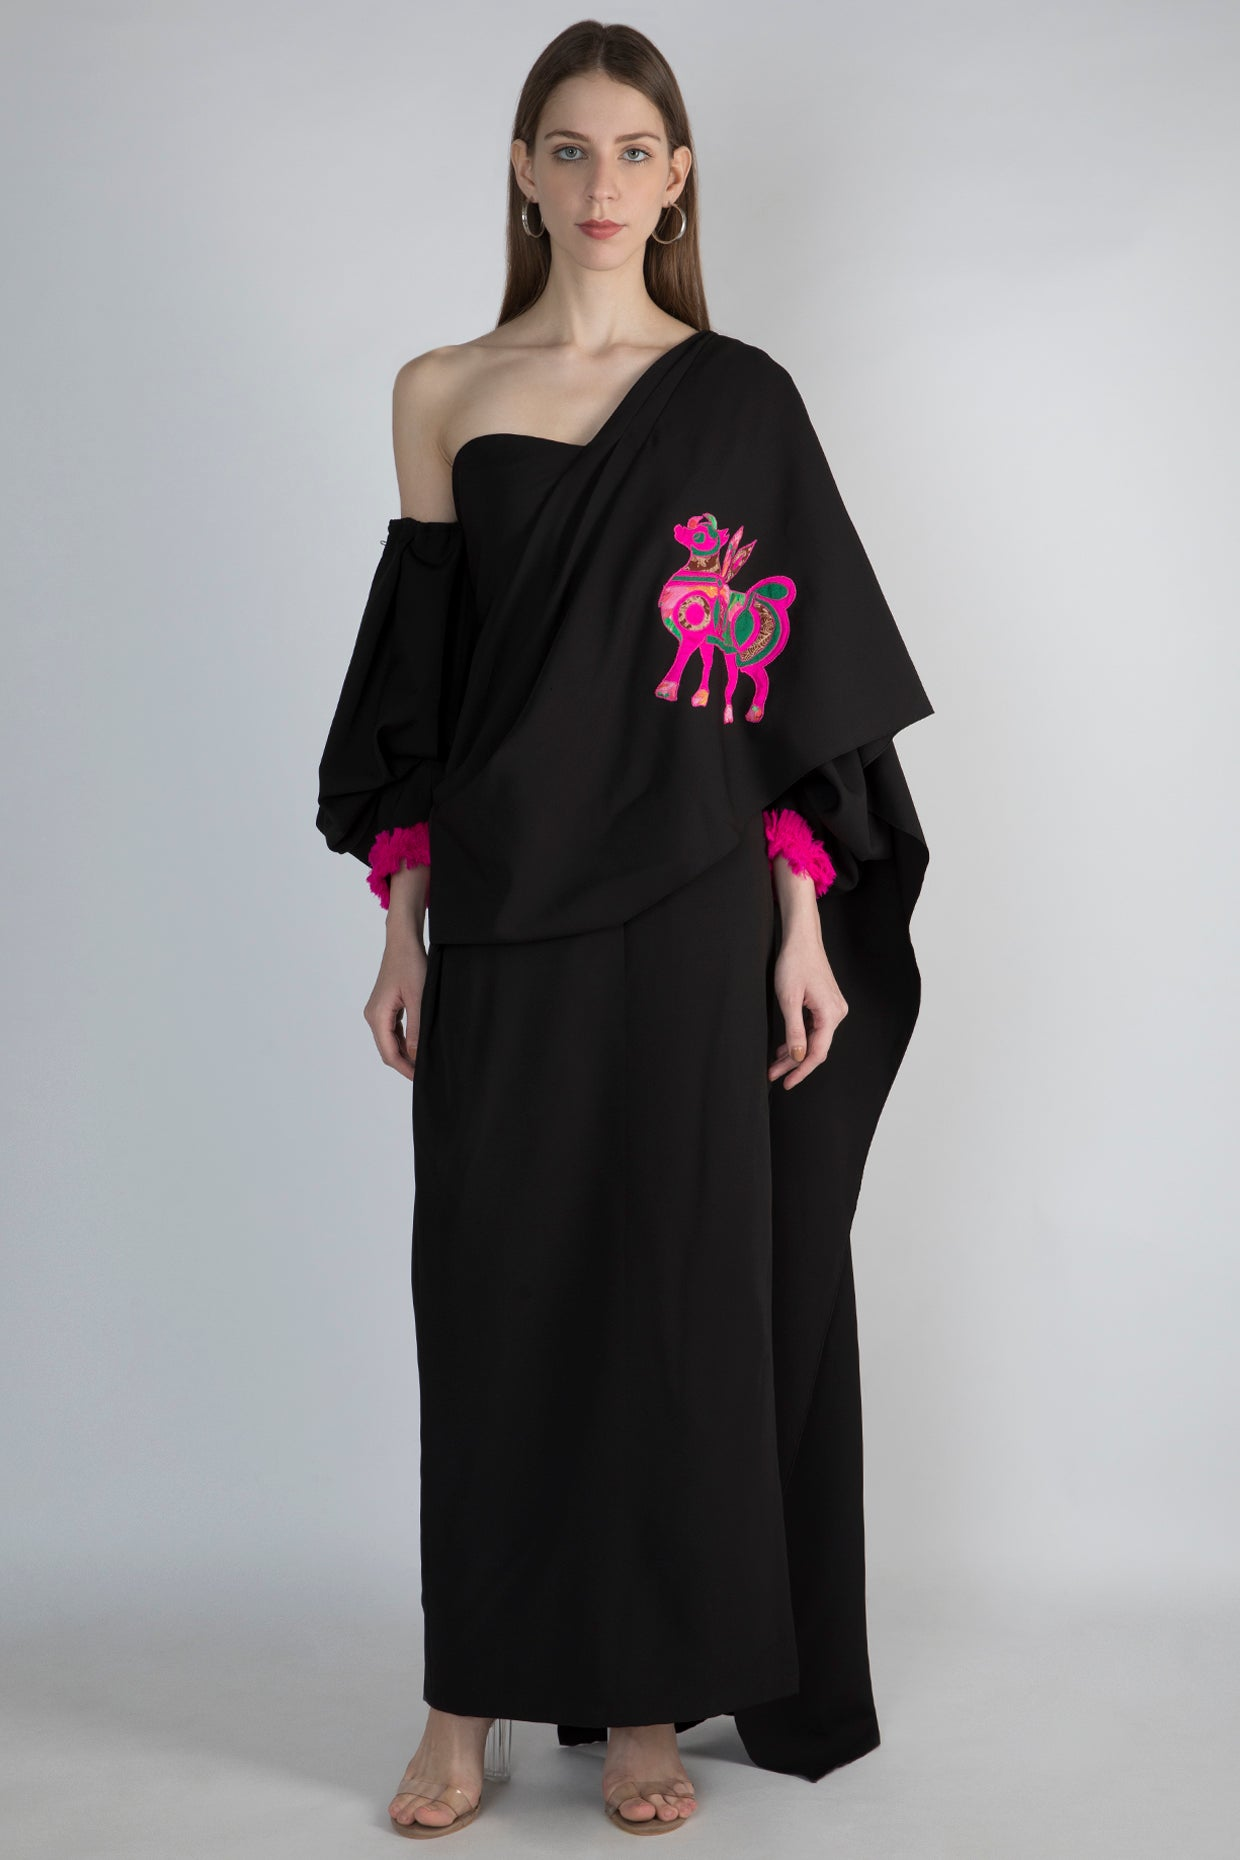 BLACK GOWN SARI WITH FOAL APPLIQUE - The Grand Trunk